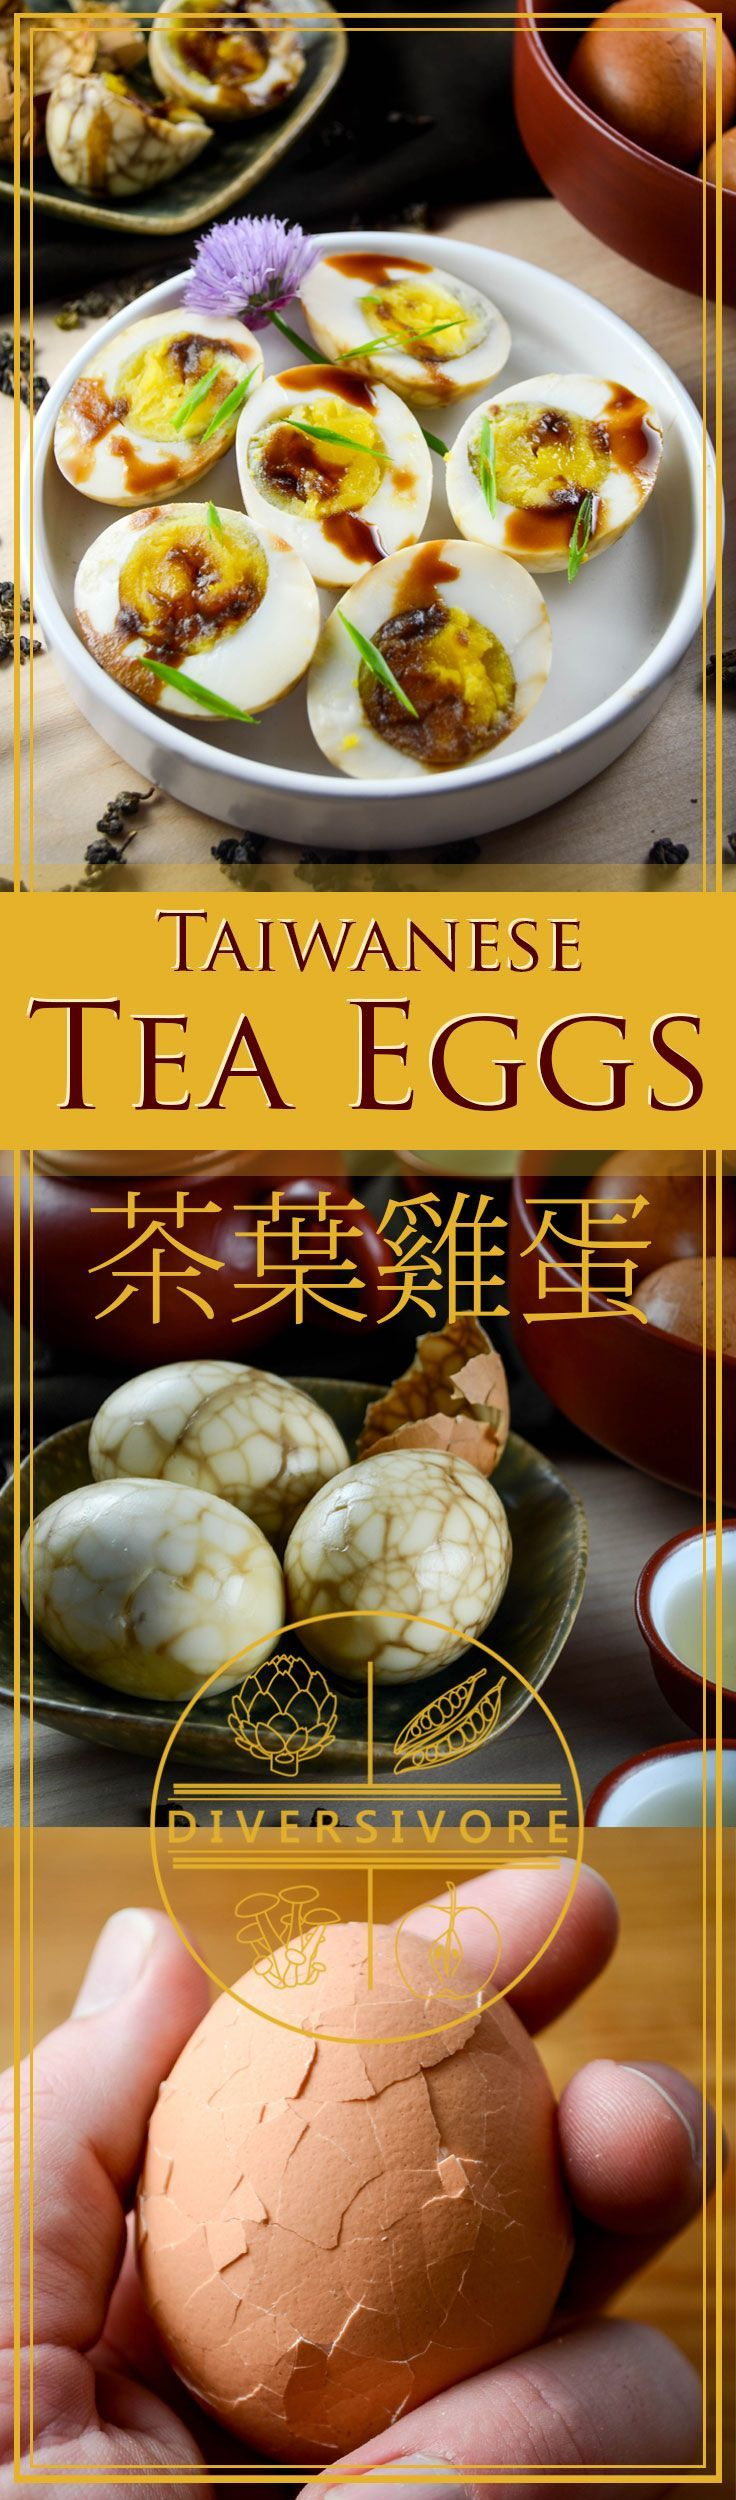 Cooked eggs steeped in a spiced tea marinade, this classic and Chinese snack is also amazingly easy to make at home. #sponsored by BC Egg.